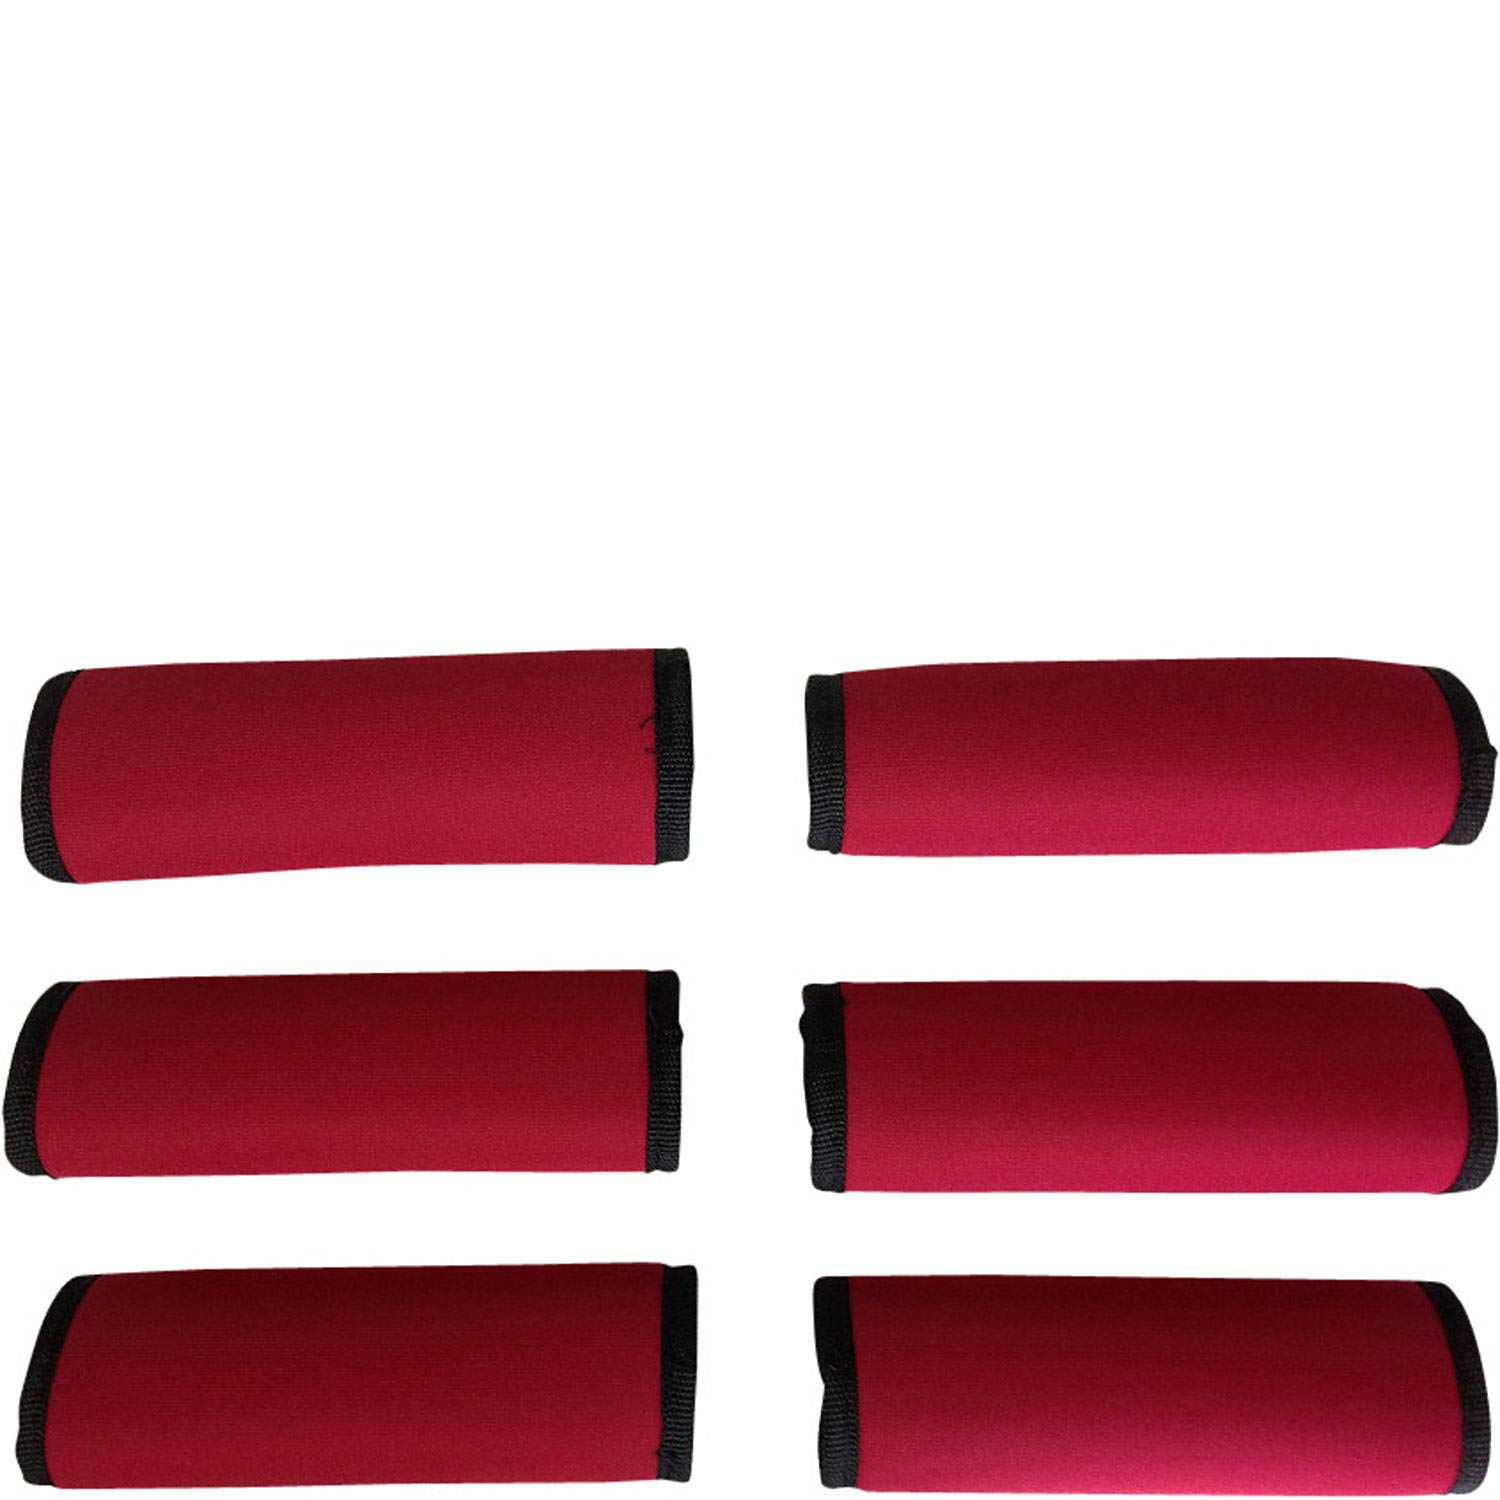 LUGGAGE SPOTTER SUPER GRABBER 6 PCS RED Soft Comfort Neoprene Handle Wraps Grip Luggage Identifier for Travel Bags Suitcases Heavy Grocery Bags and More! 50/% OFF